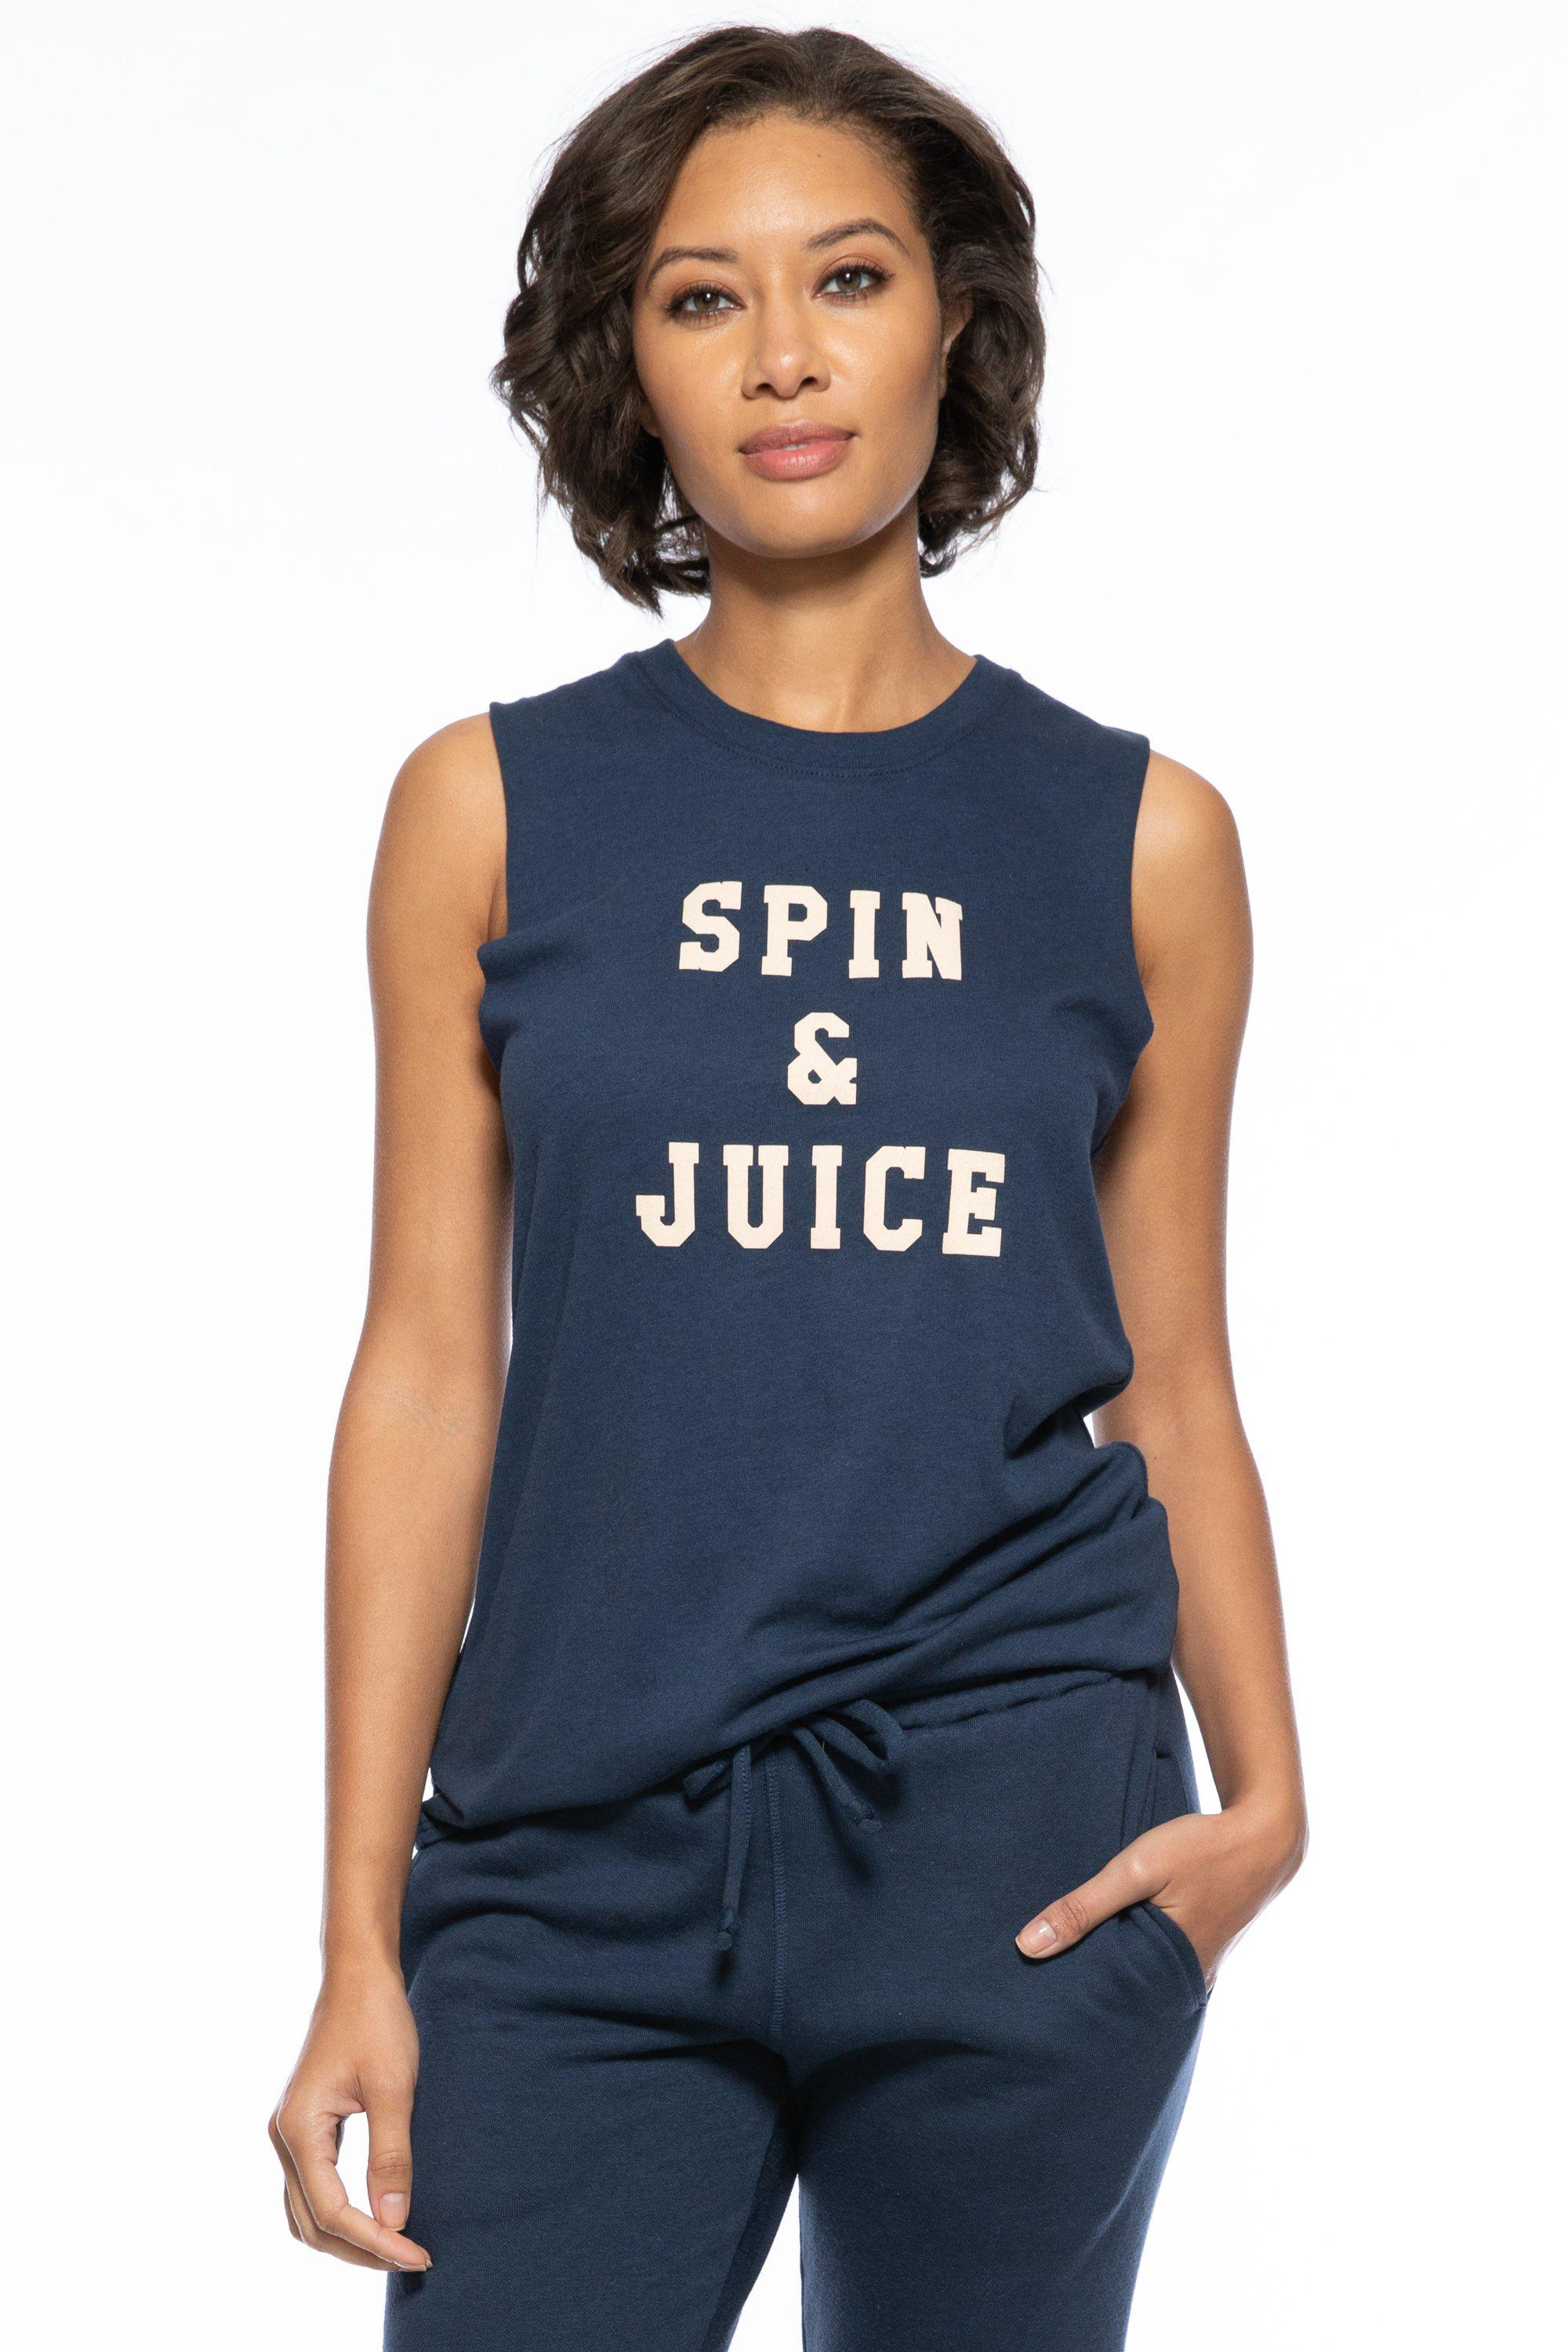 SPIN AND JUICE MUSCLE